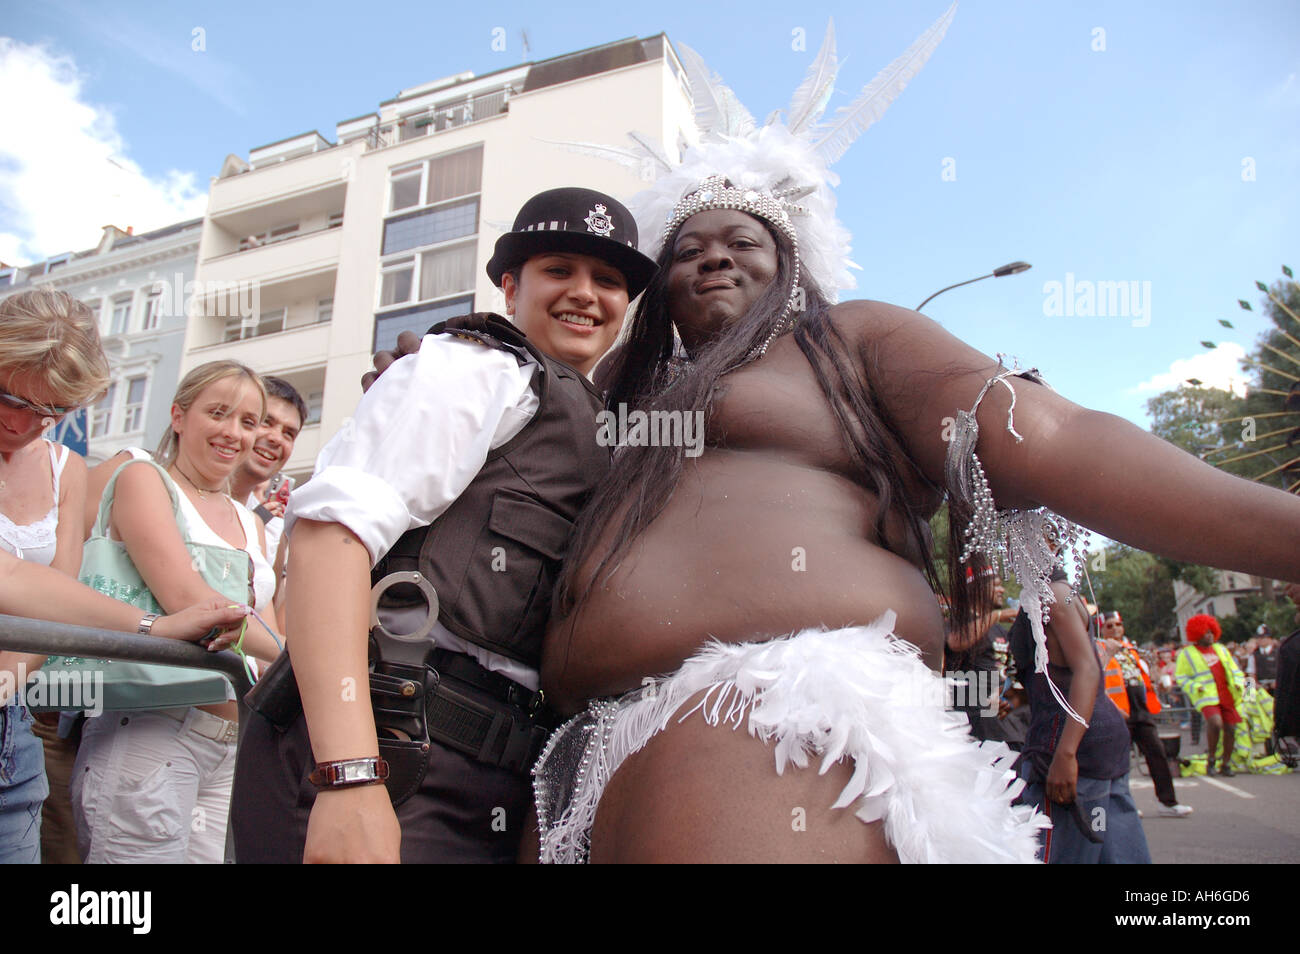 Large black woman posing